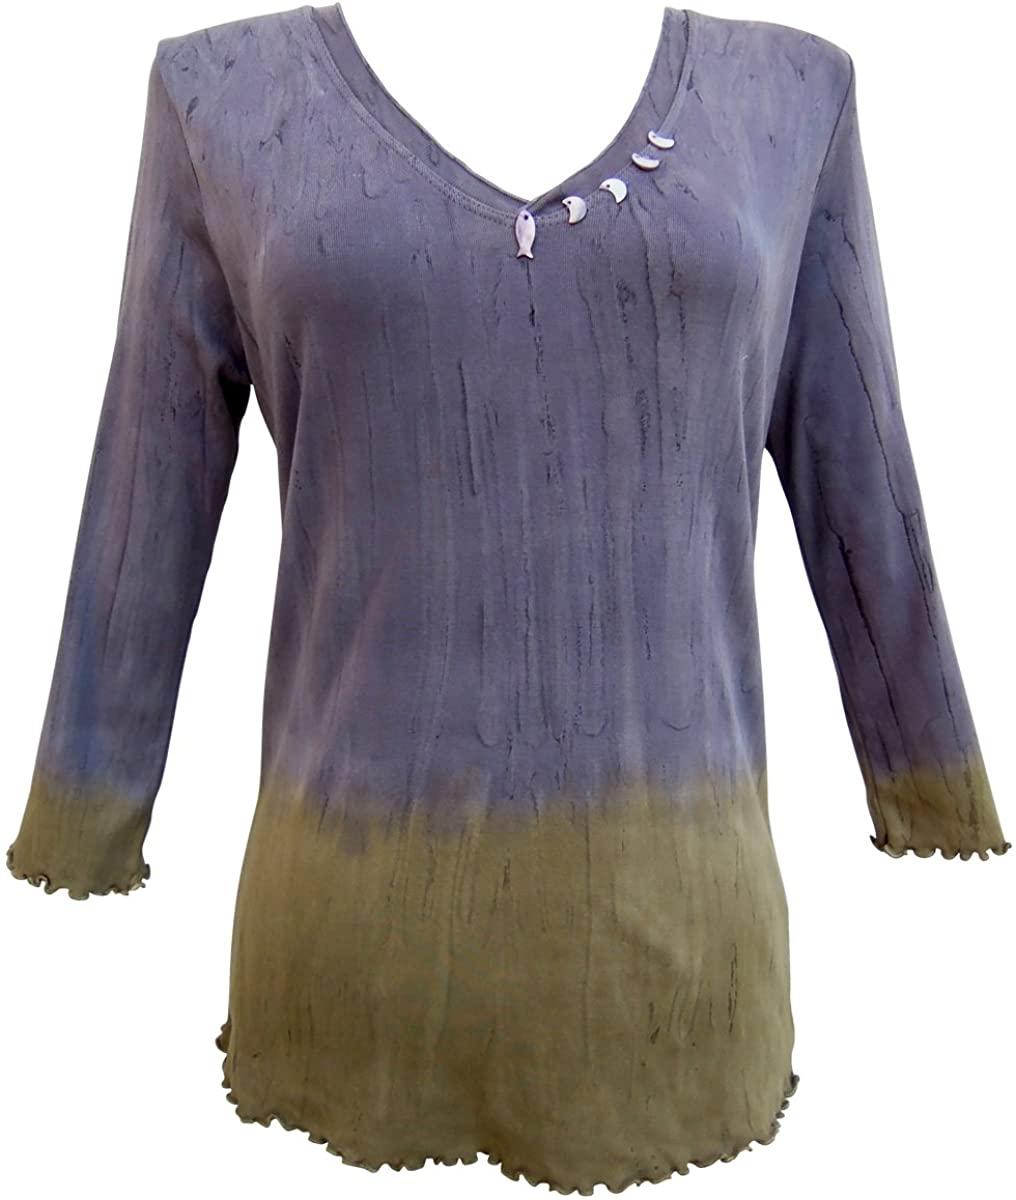 Nature Art Womens Tie Dye Colorblock Top Button Embellished Shirt 3/4 Sleeves